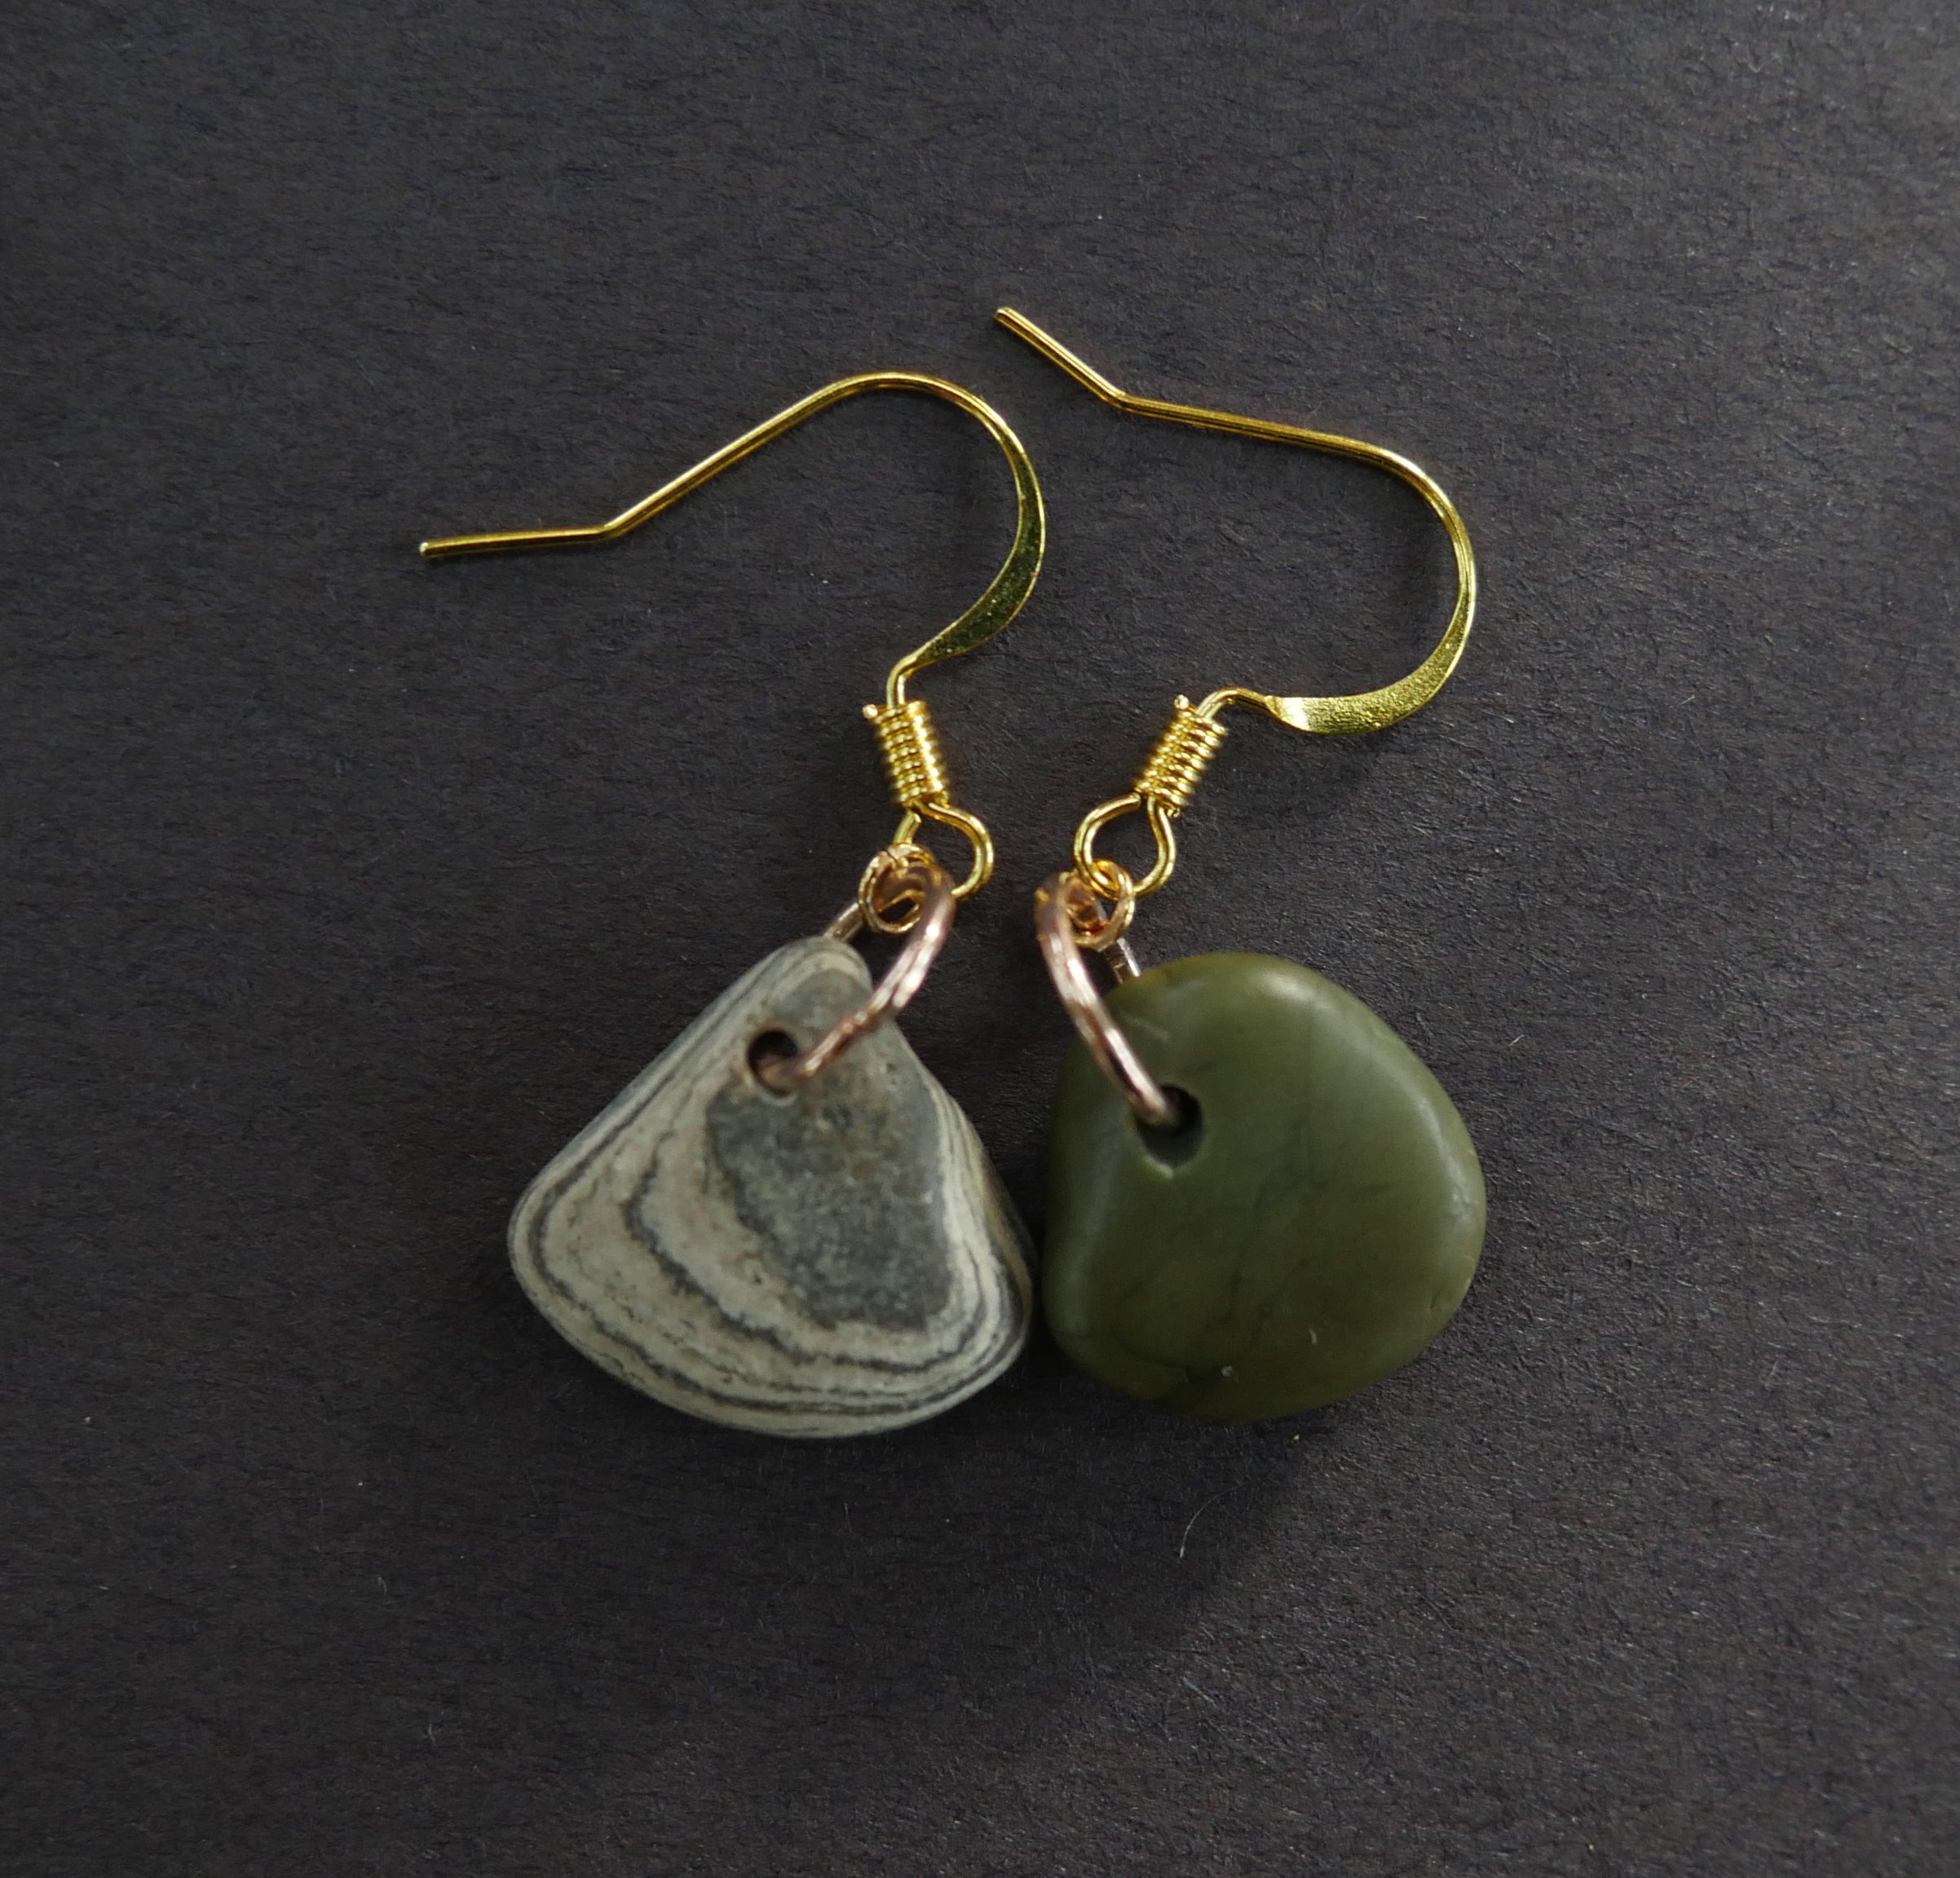 Complementary green and striped stone earrings